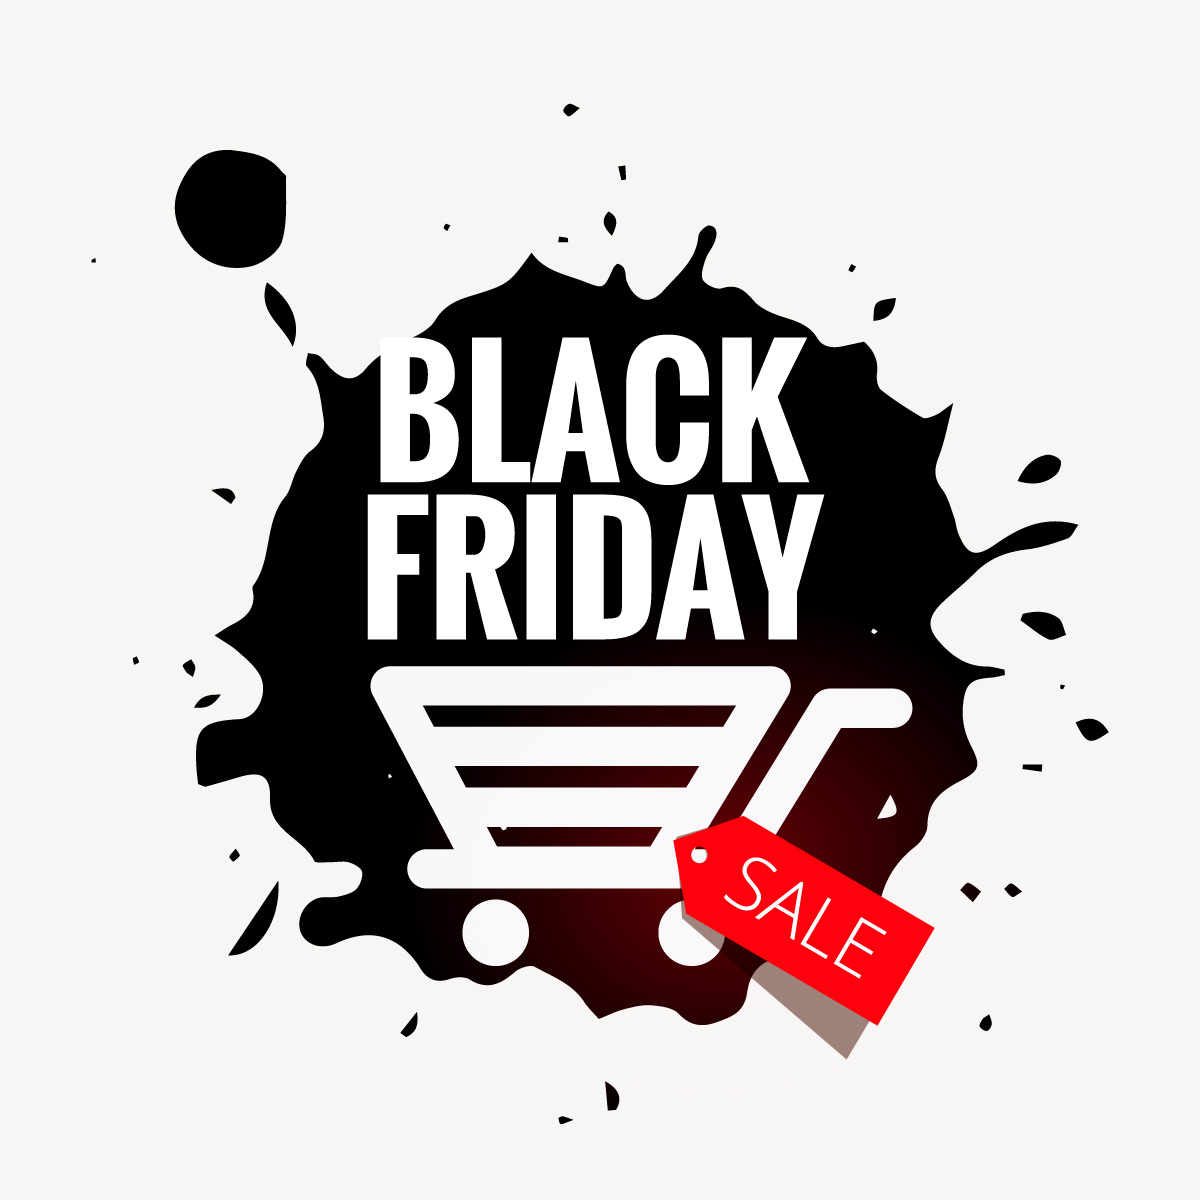 black friday sale in grunge style